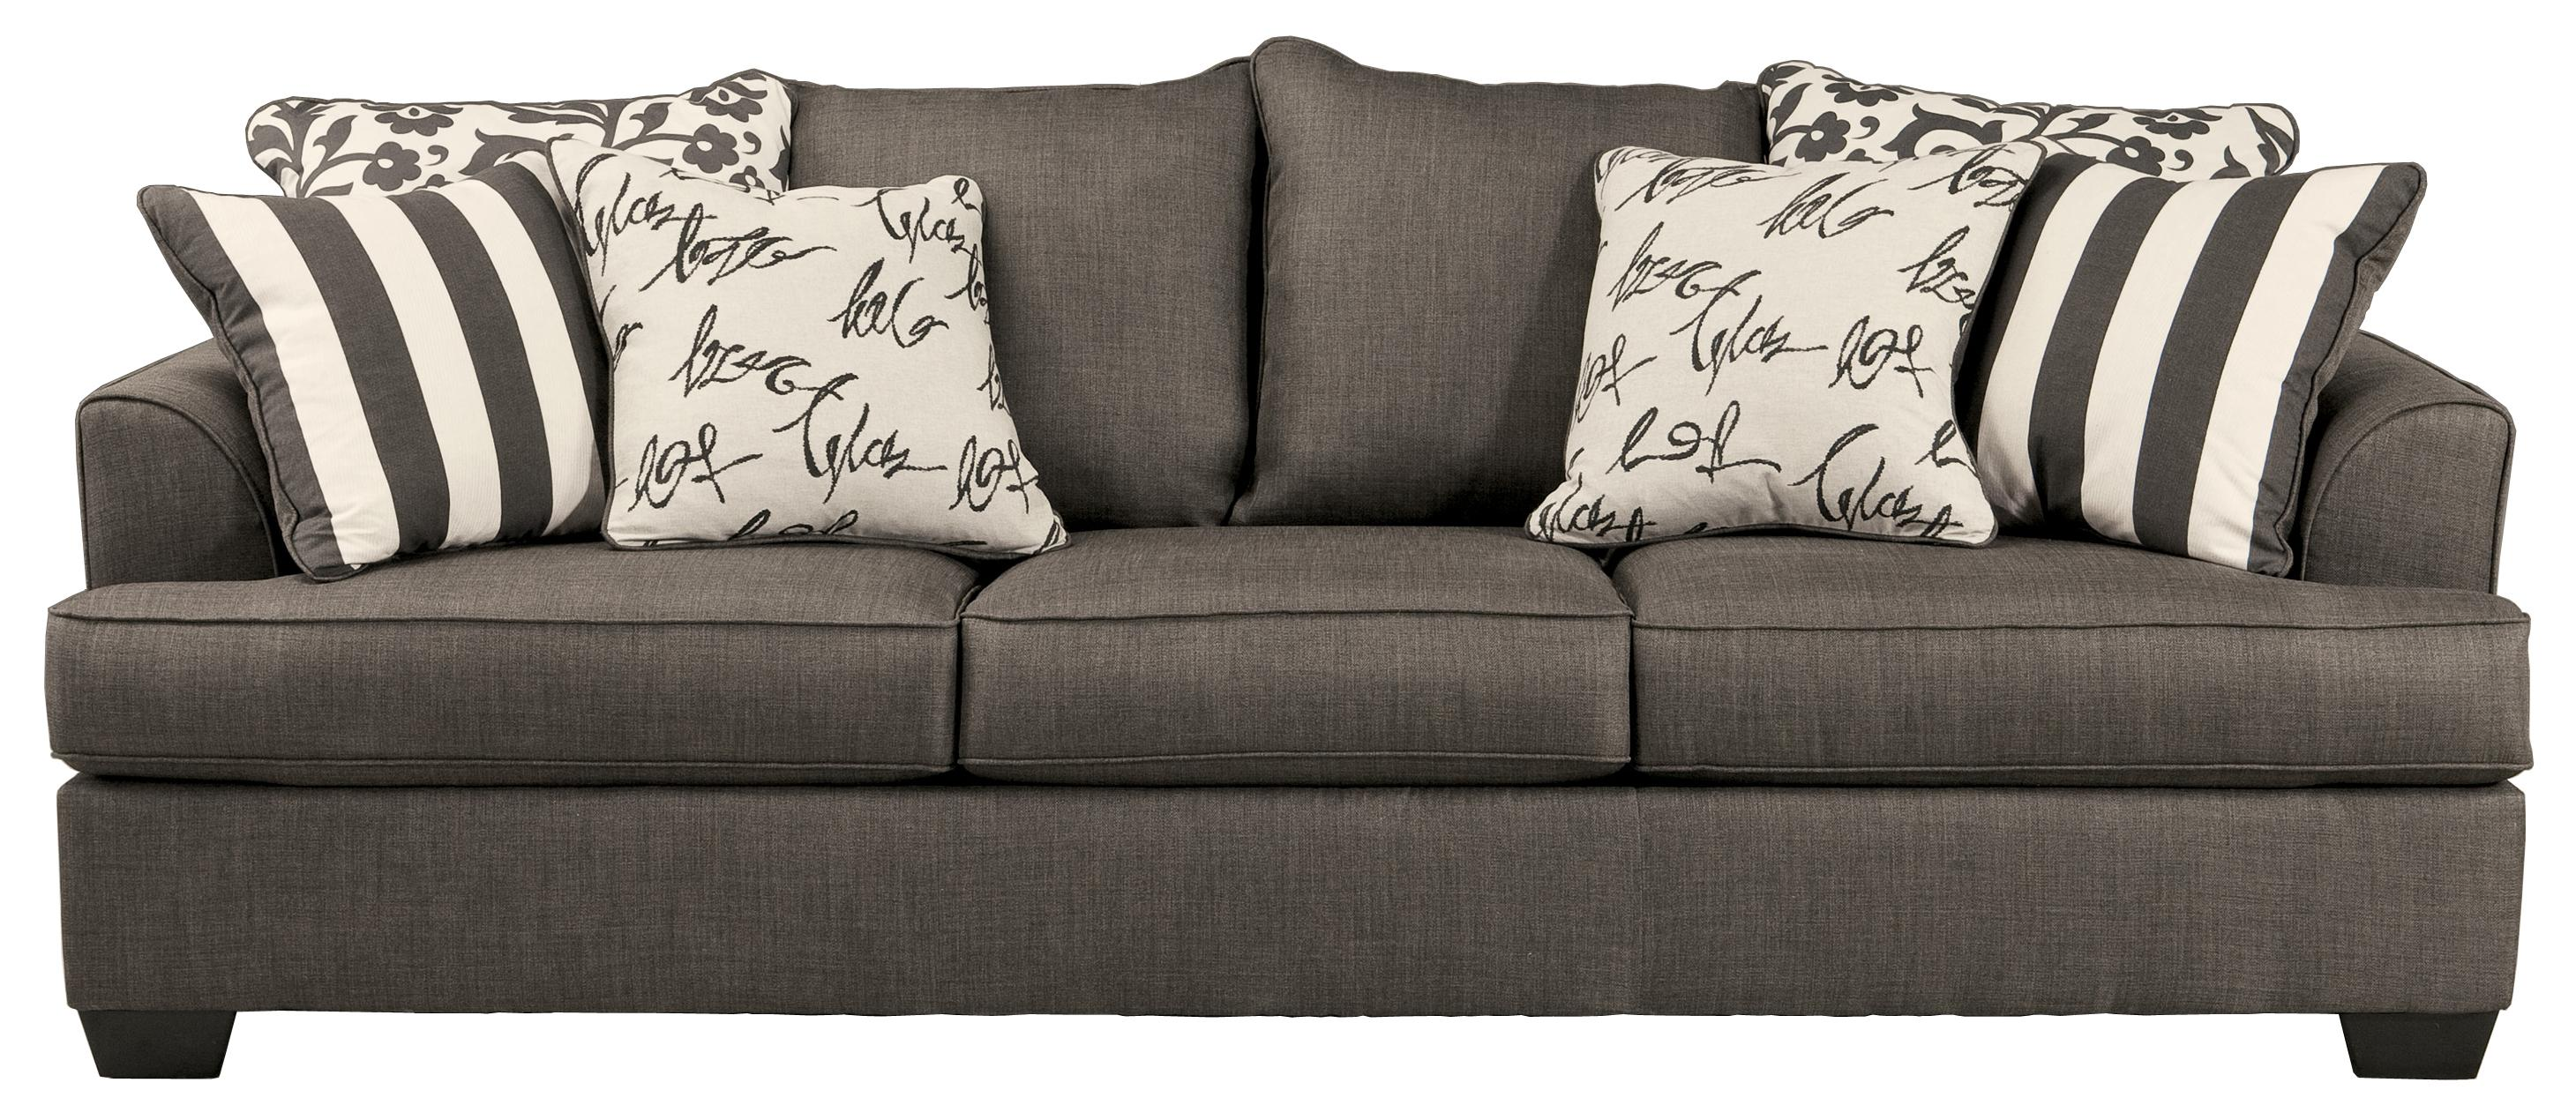 Signature Design By Ashley Levon   Charcoal Queen Sofa Sleeper   Item  Number: 7340339